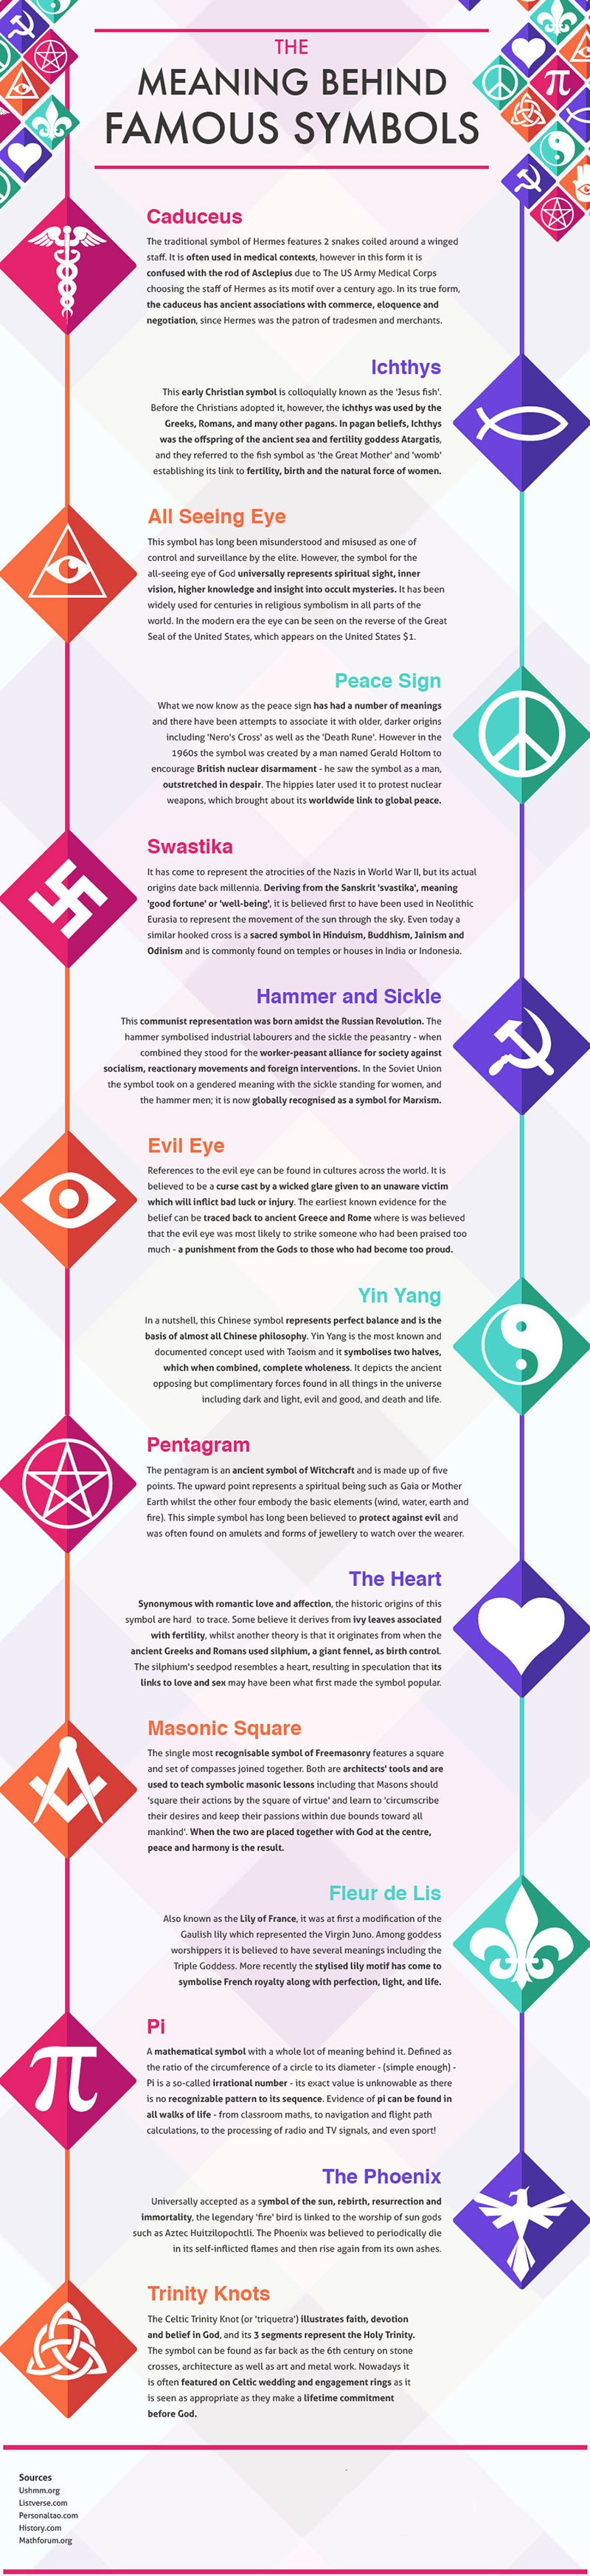 Meaning behind famous symbols infographic kickassfacts 81 meaning behind famous symbols biocorpaavc Images